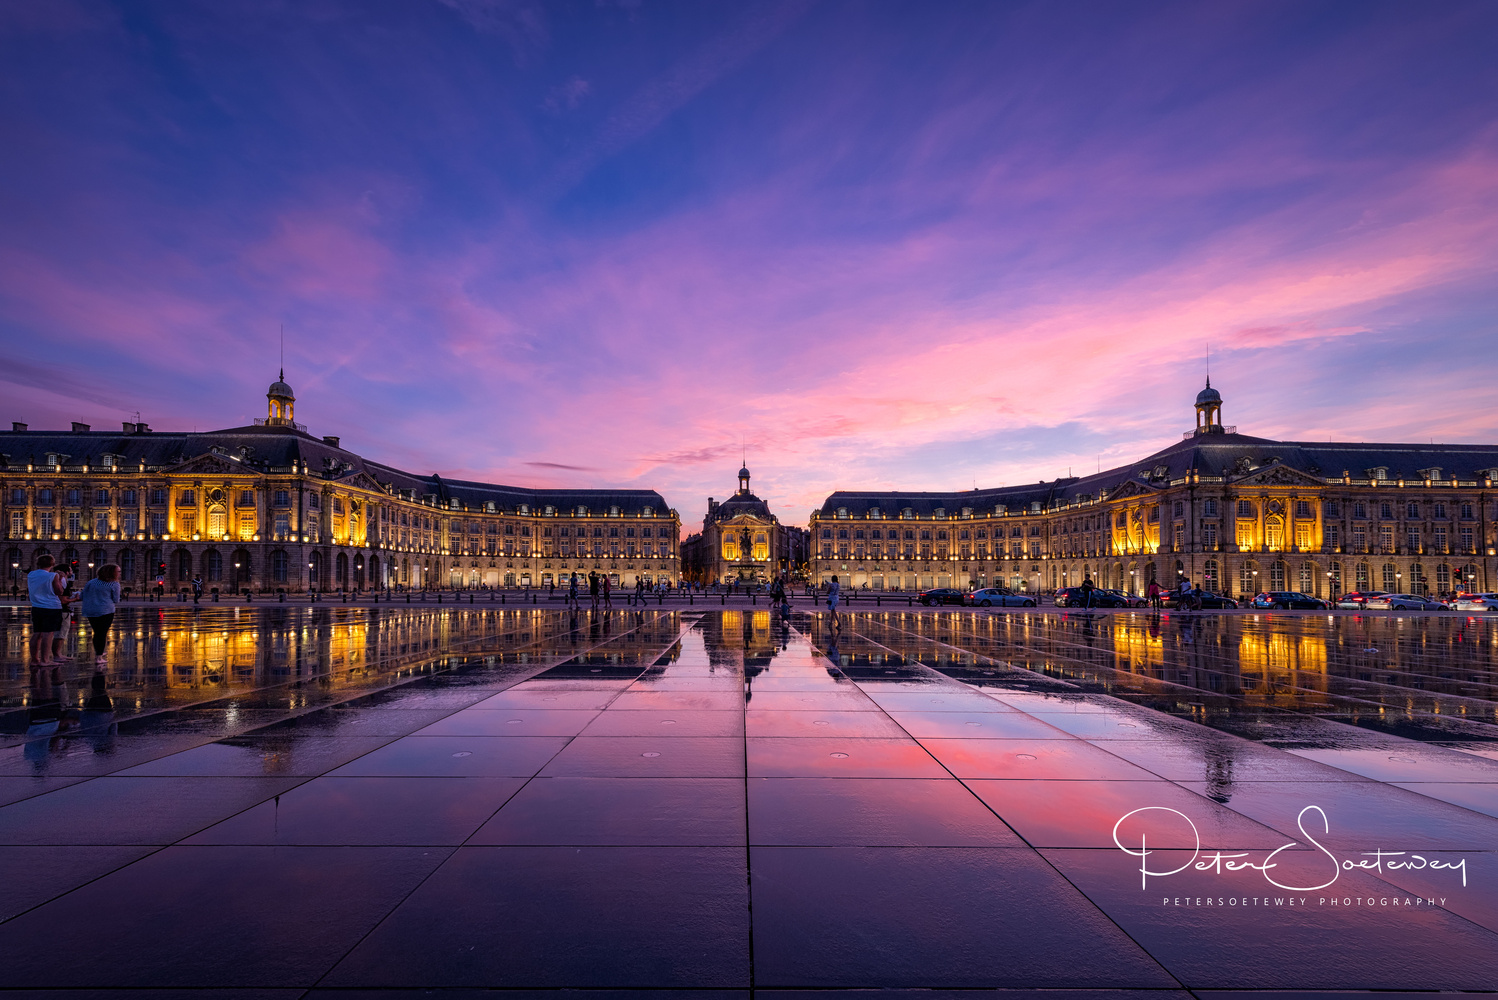 Bordeaux by peter soetewey